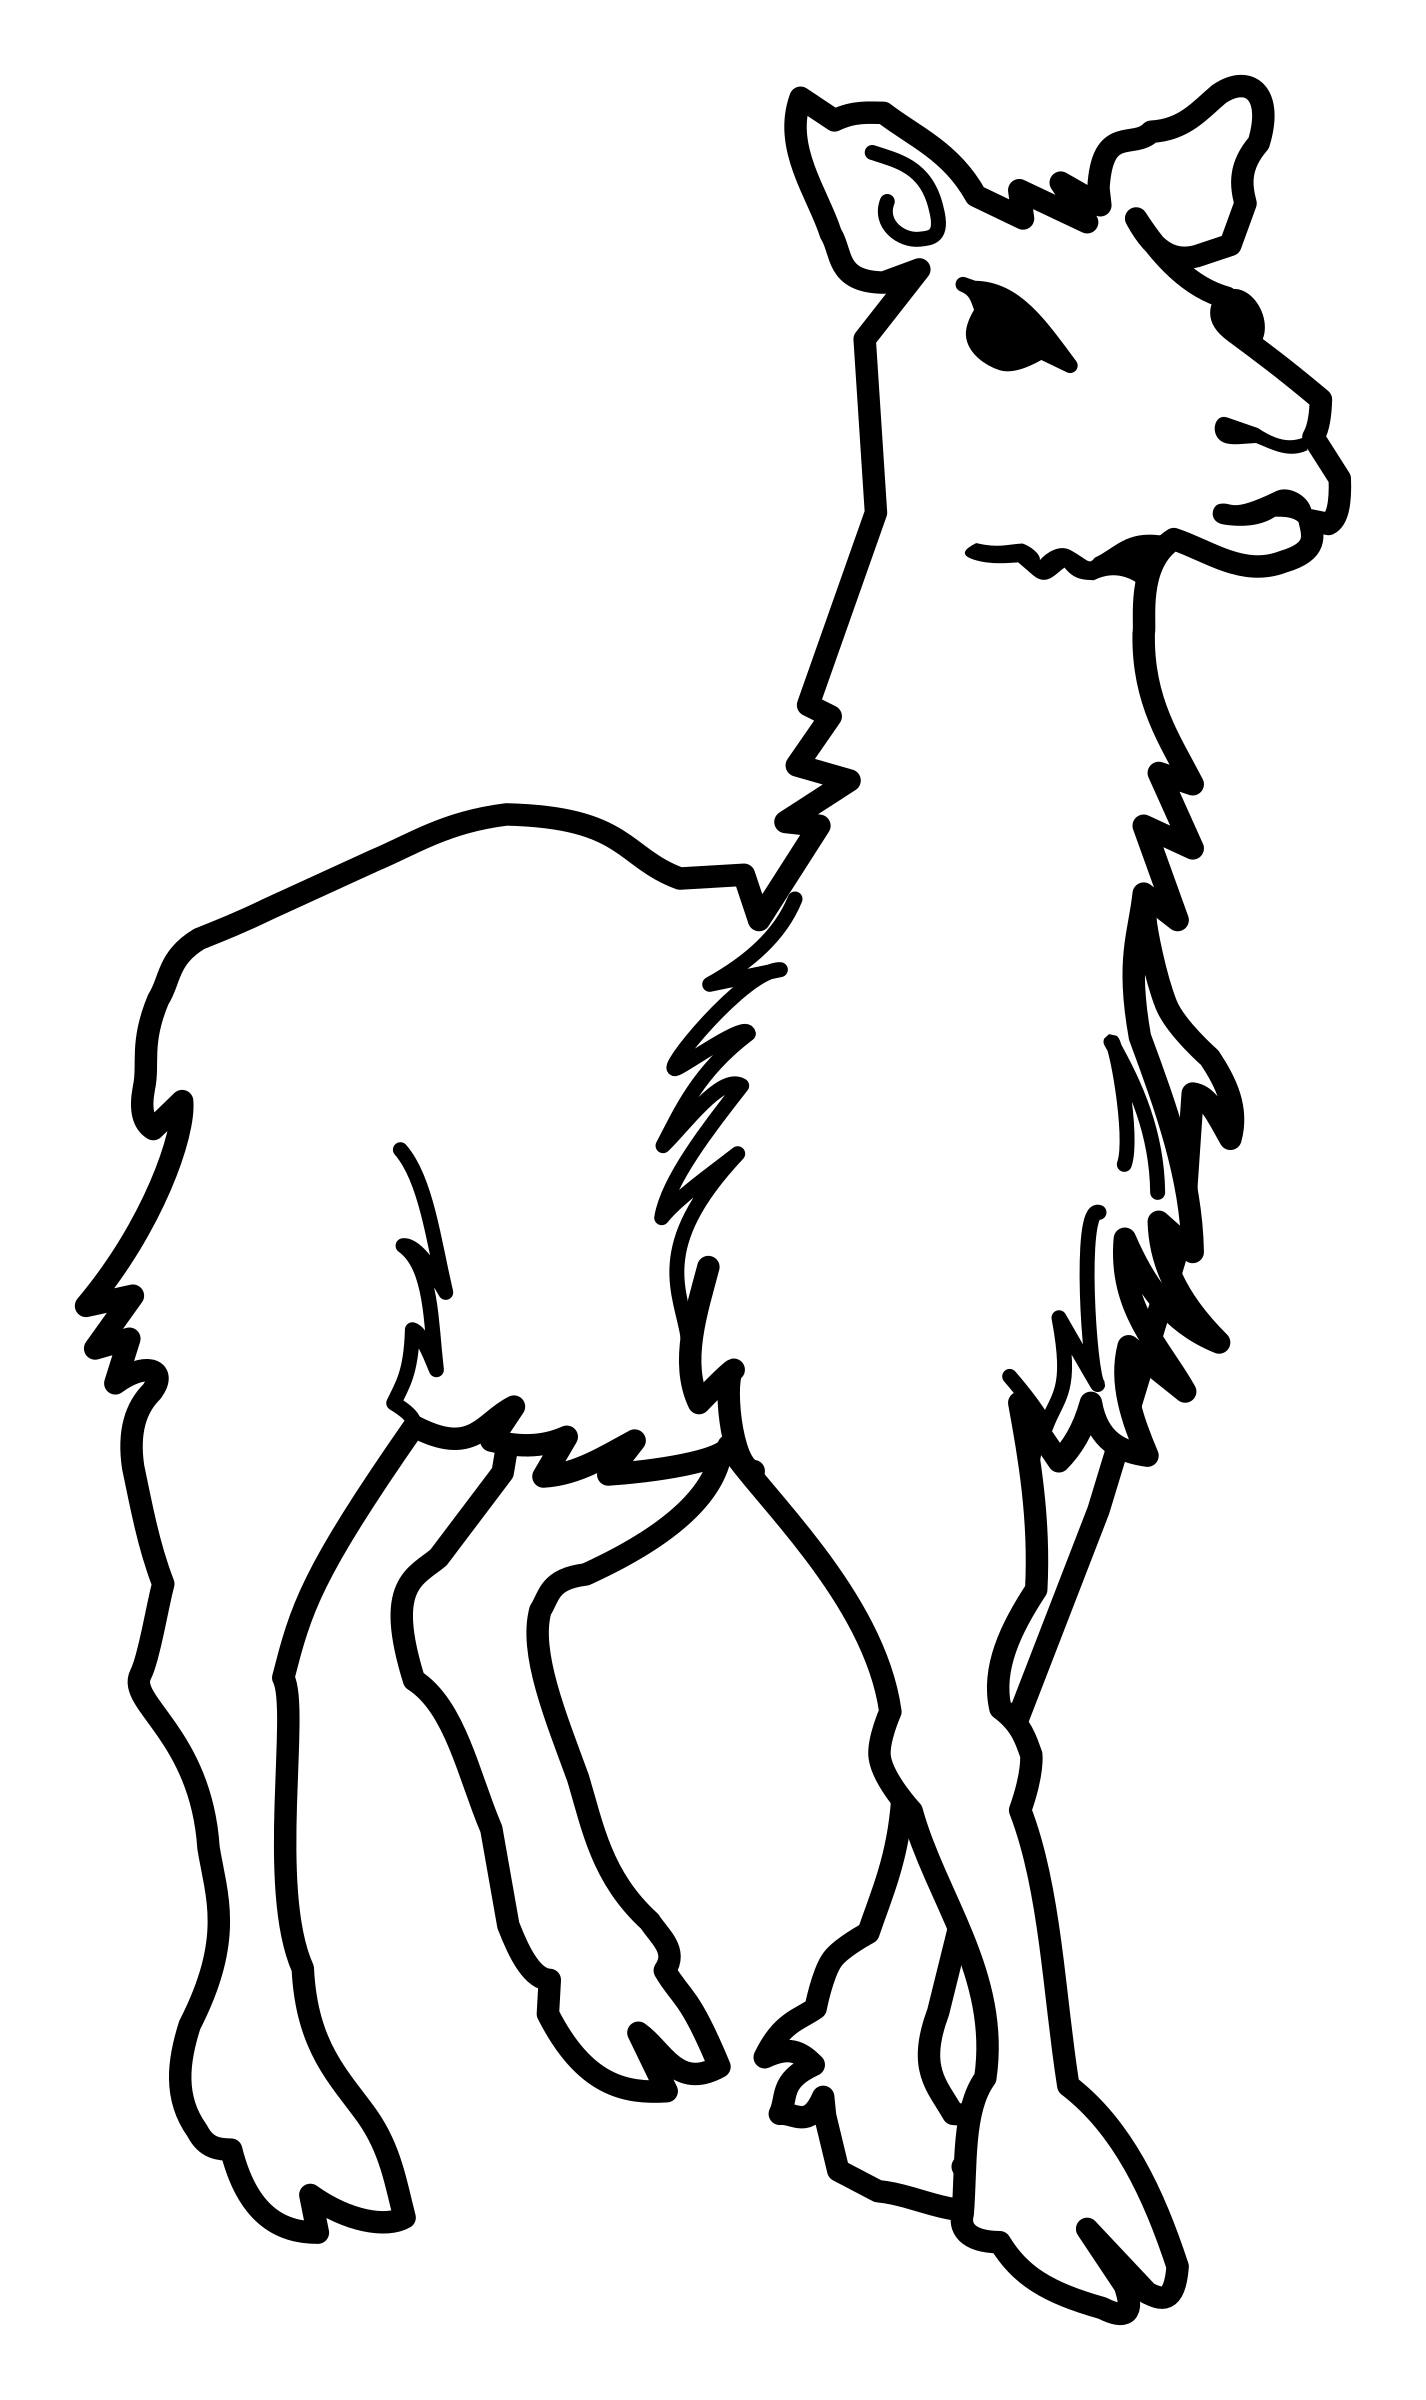 Llama outline png. Lineart icons free and